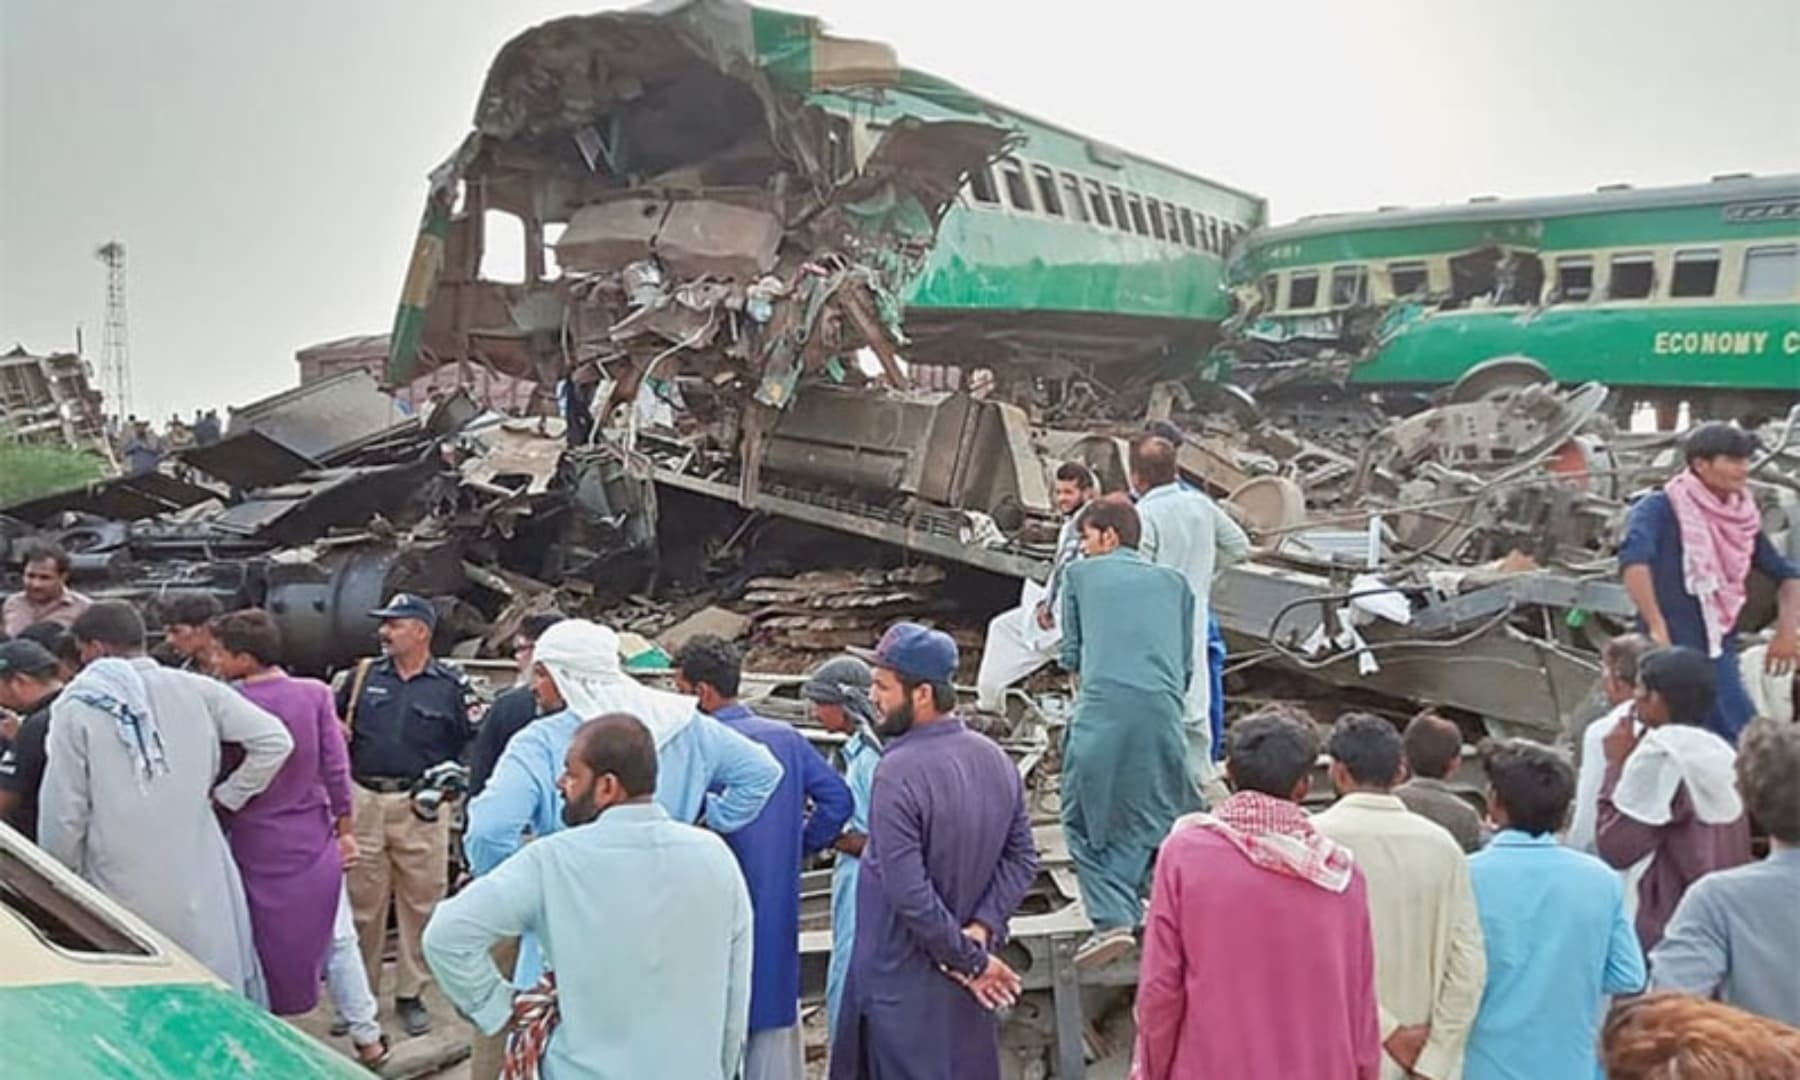 Local residents gather around the wreckage of carriages at the site where two trains collided in Rahim Yar Khan district, July 11, 2019. — AFP/File